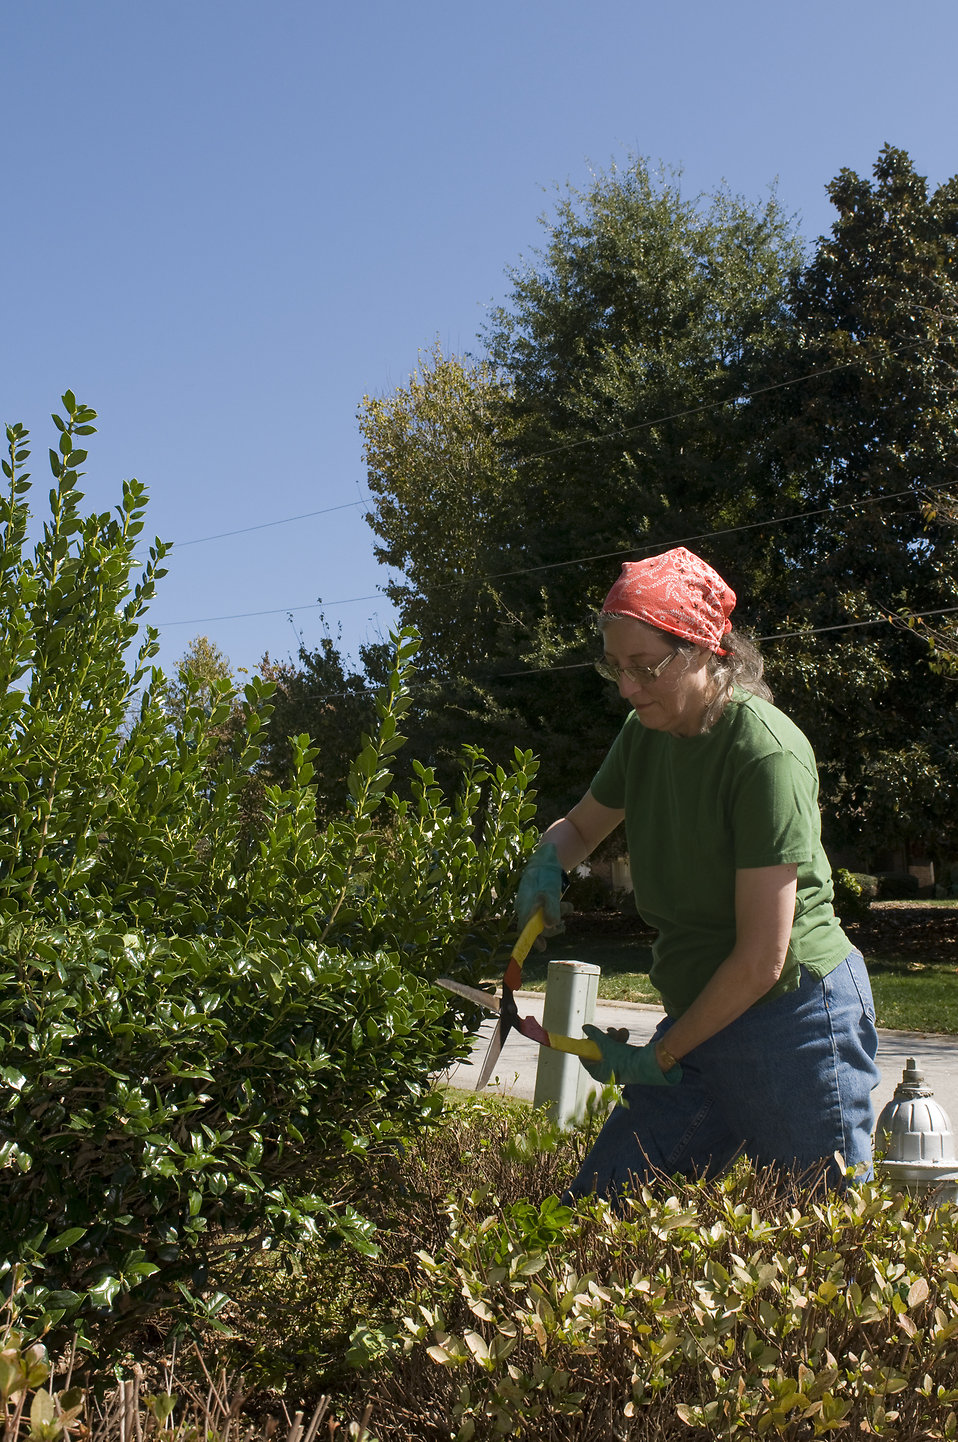 Gardening Free Stock Photo A Woman Doing Yardwork